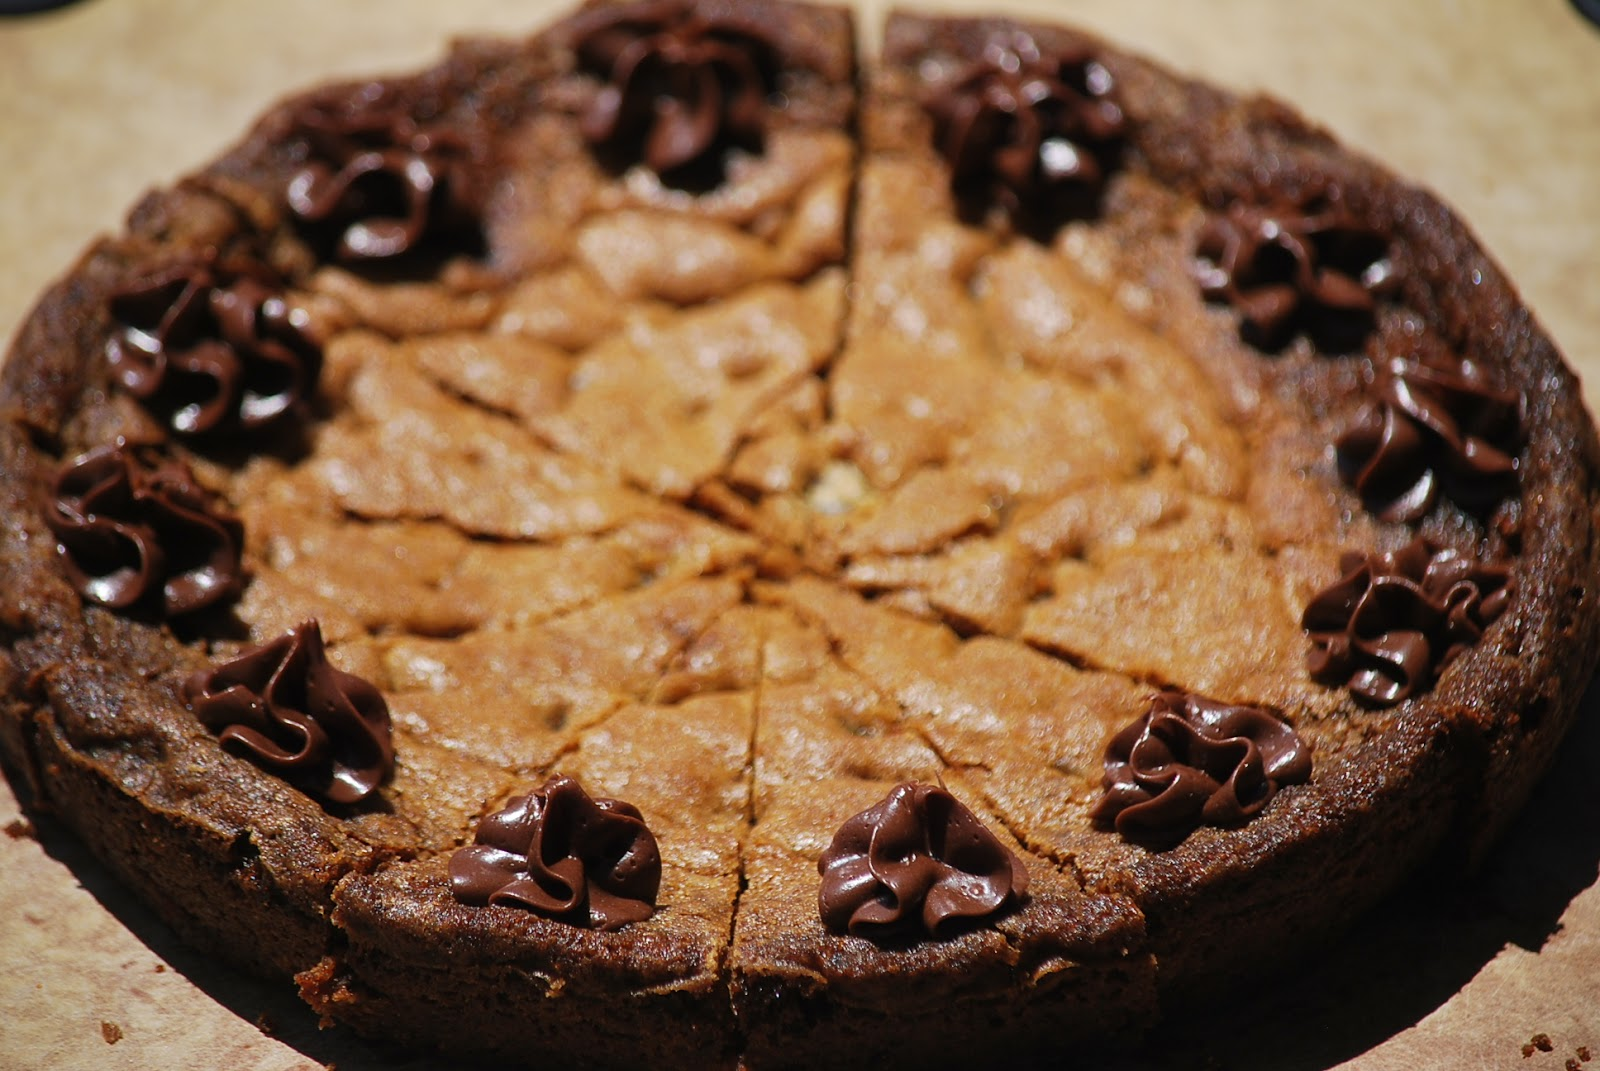 My story in recipes: Chocolate Chip Cookie Cake